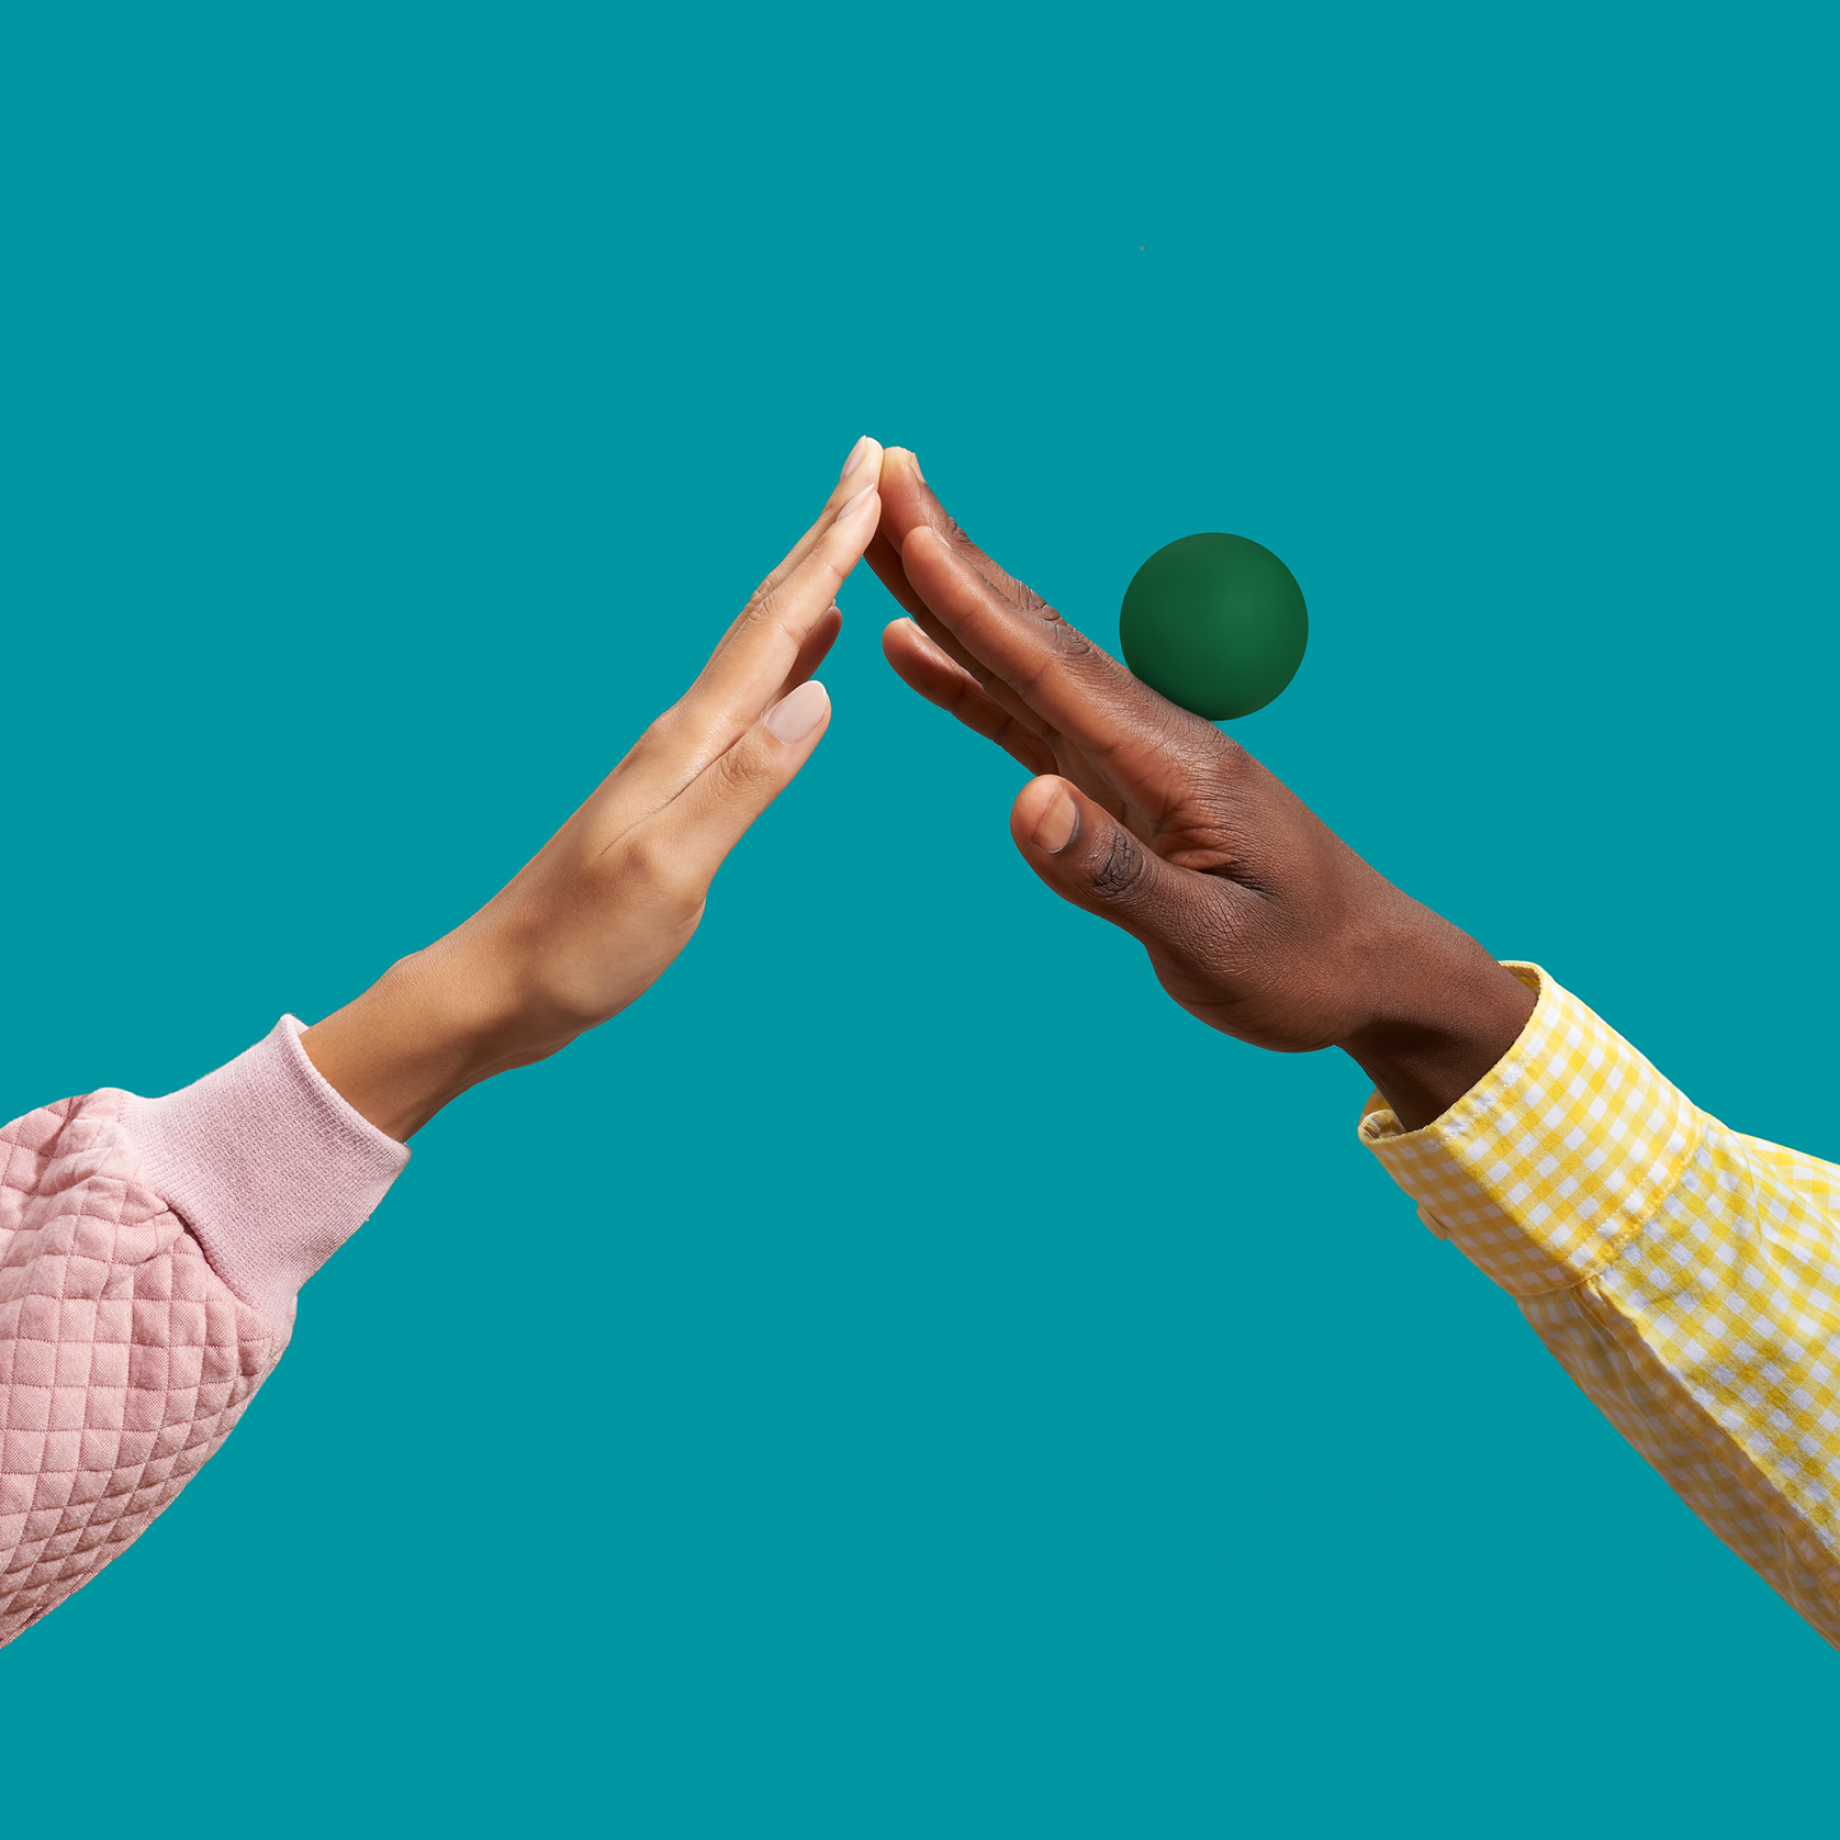 Two hands touching at the fingertips, balancing a ball